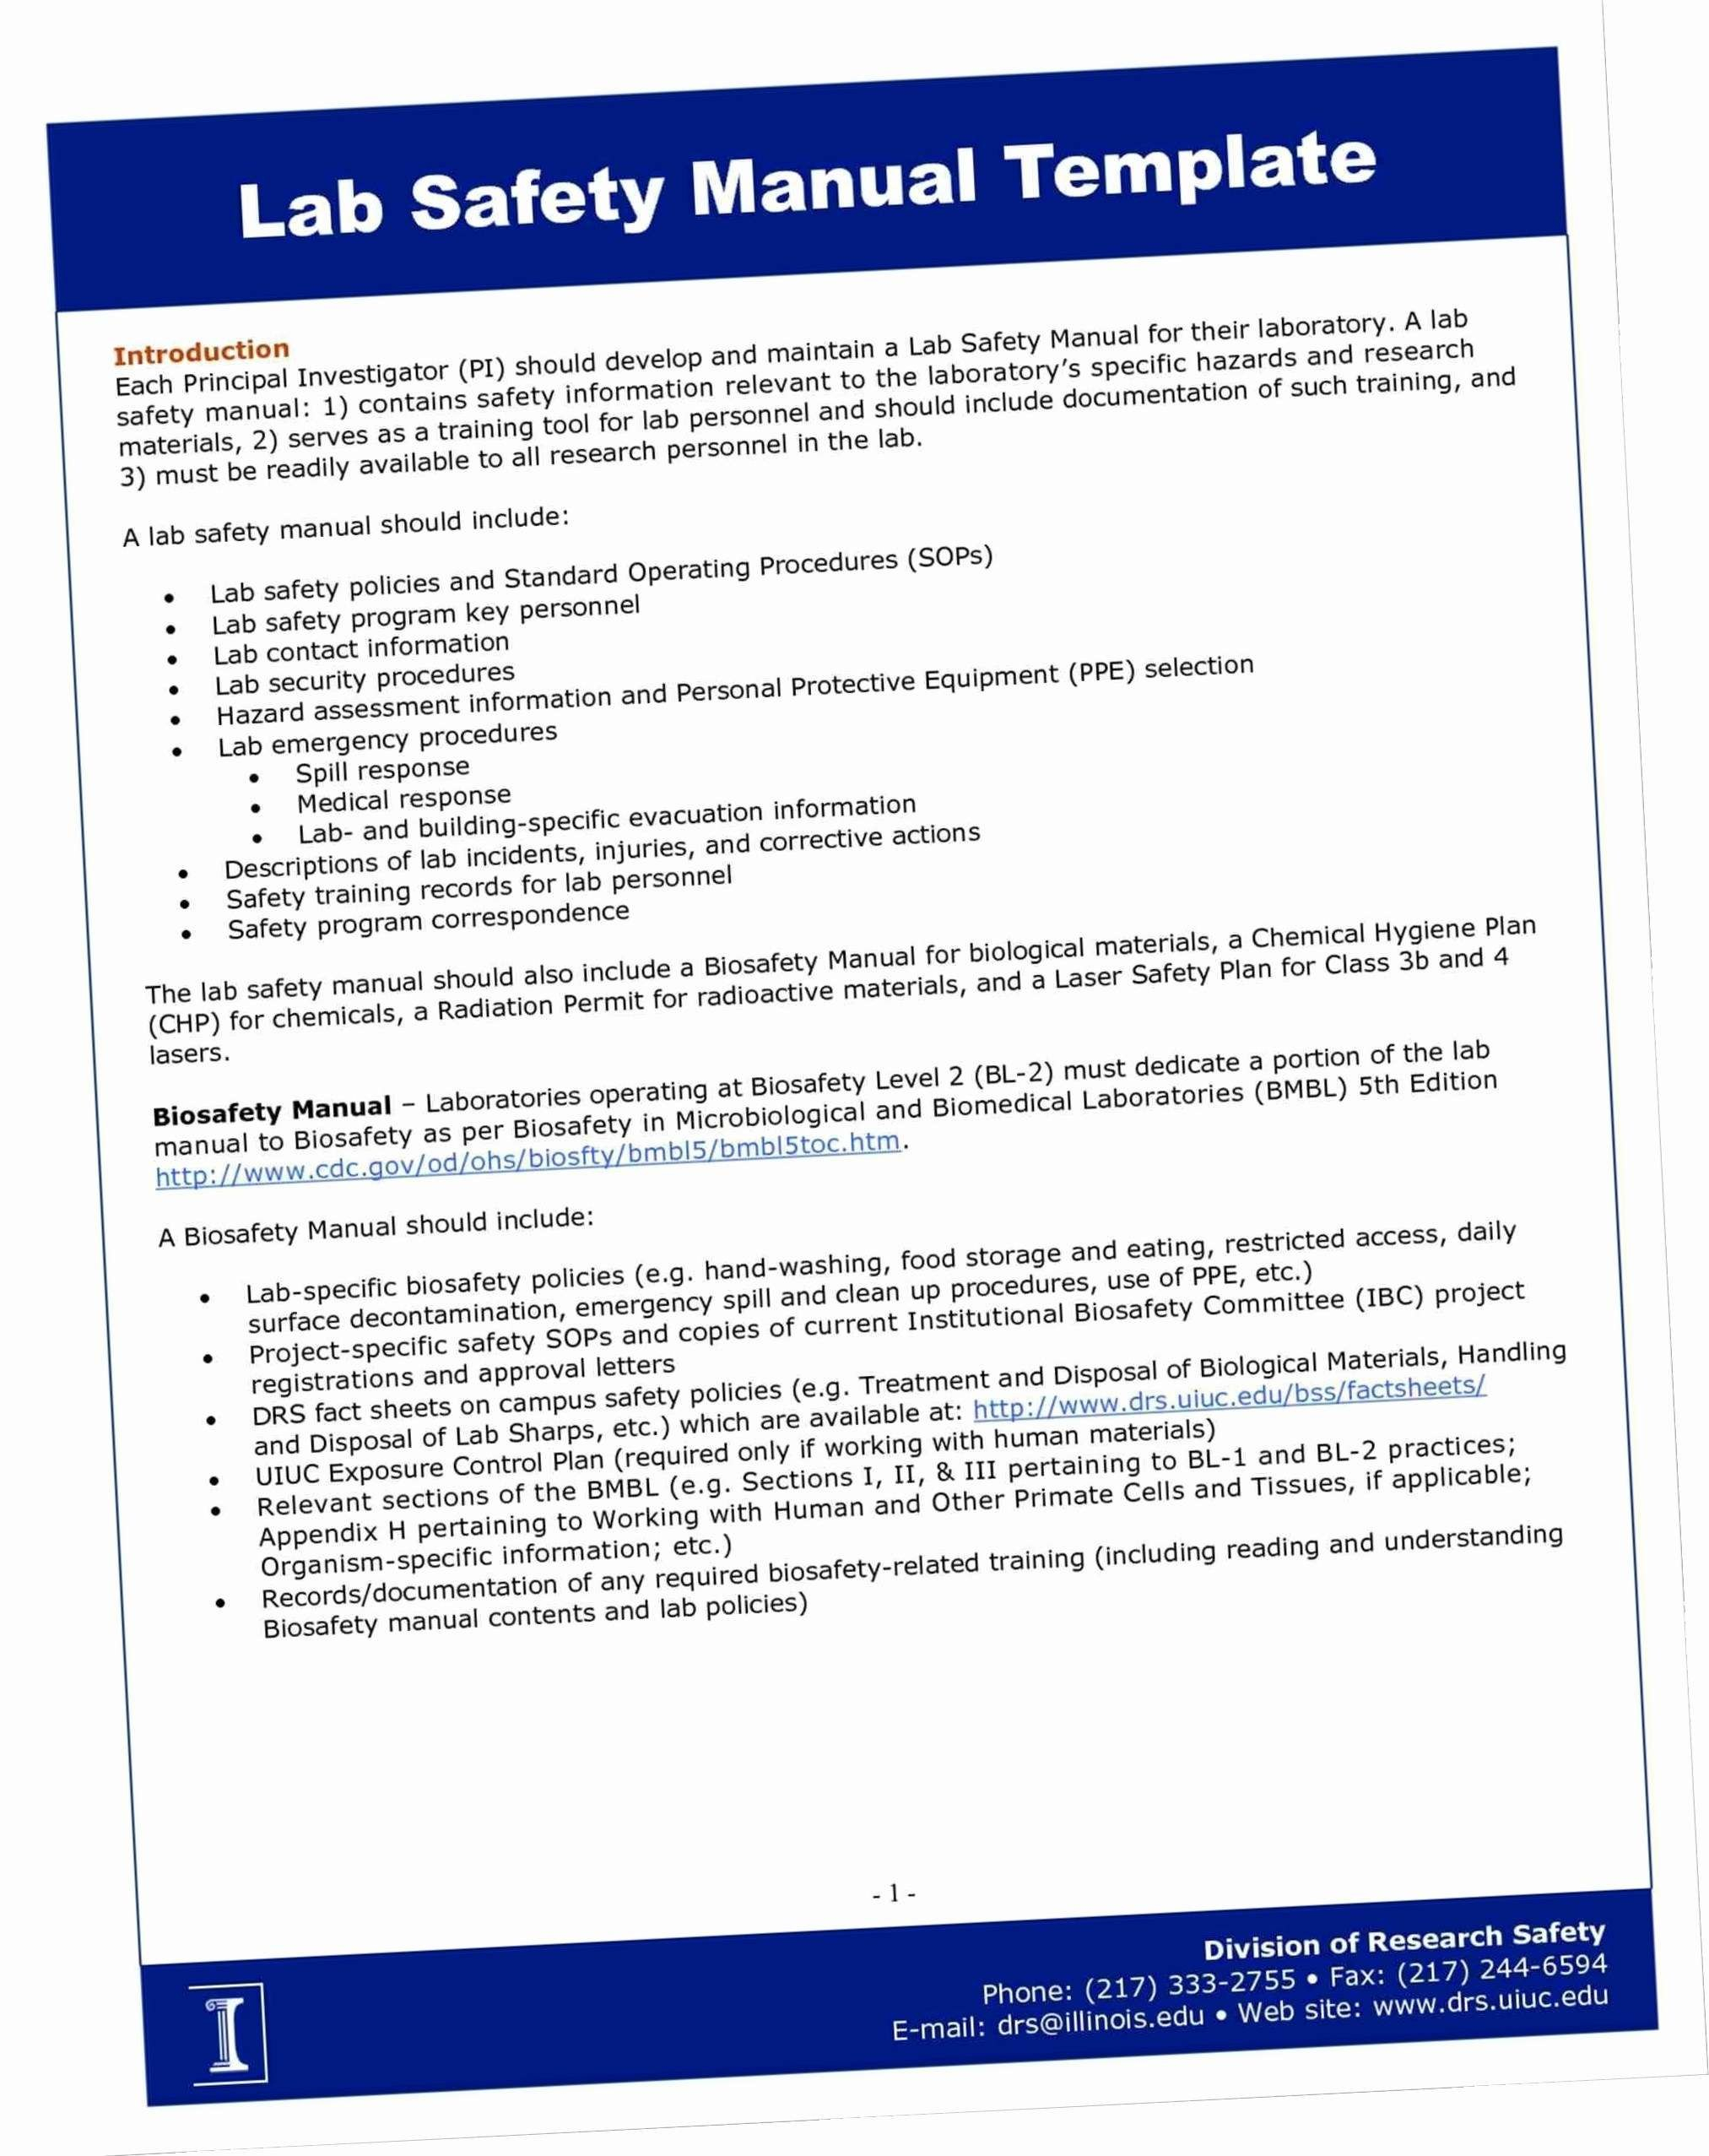 Policies And Procedures Template For Small Business  Caquetapositivo Within Policies And Procedures Template For Small Business